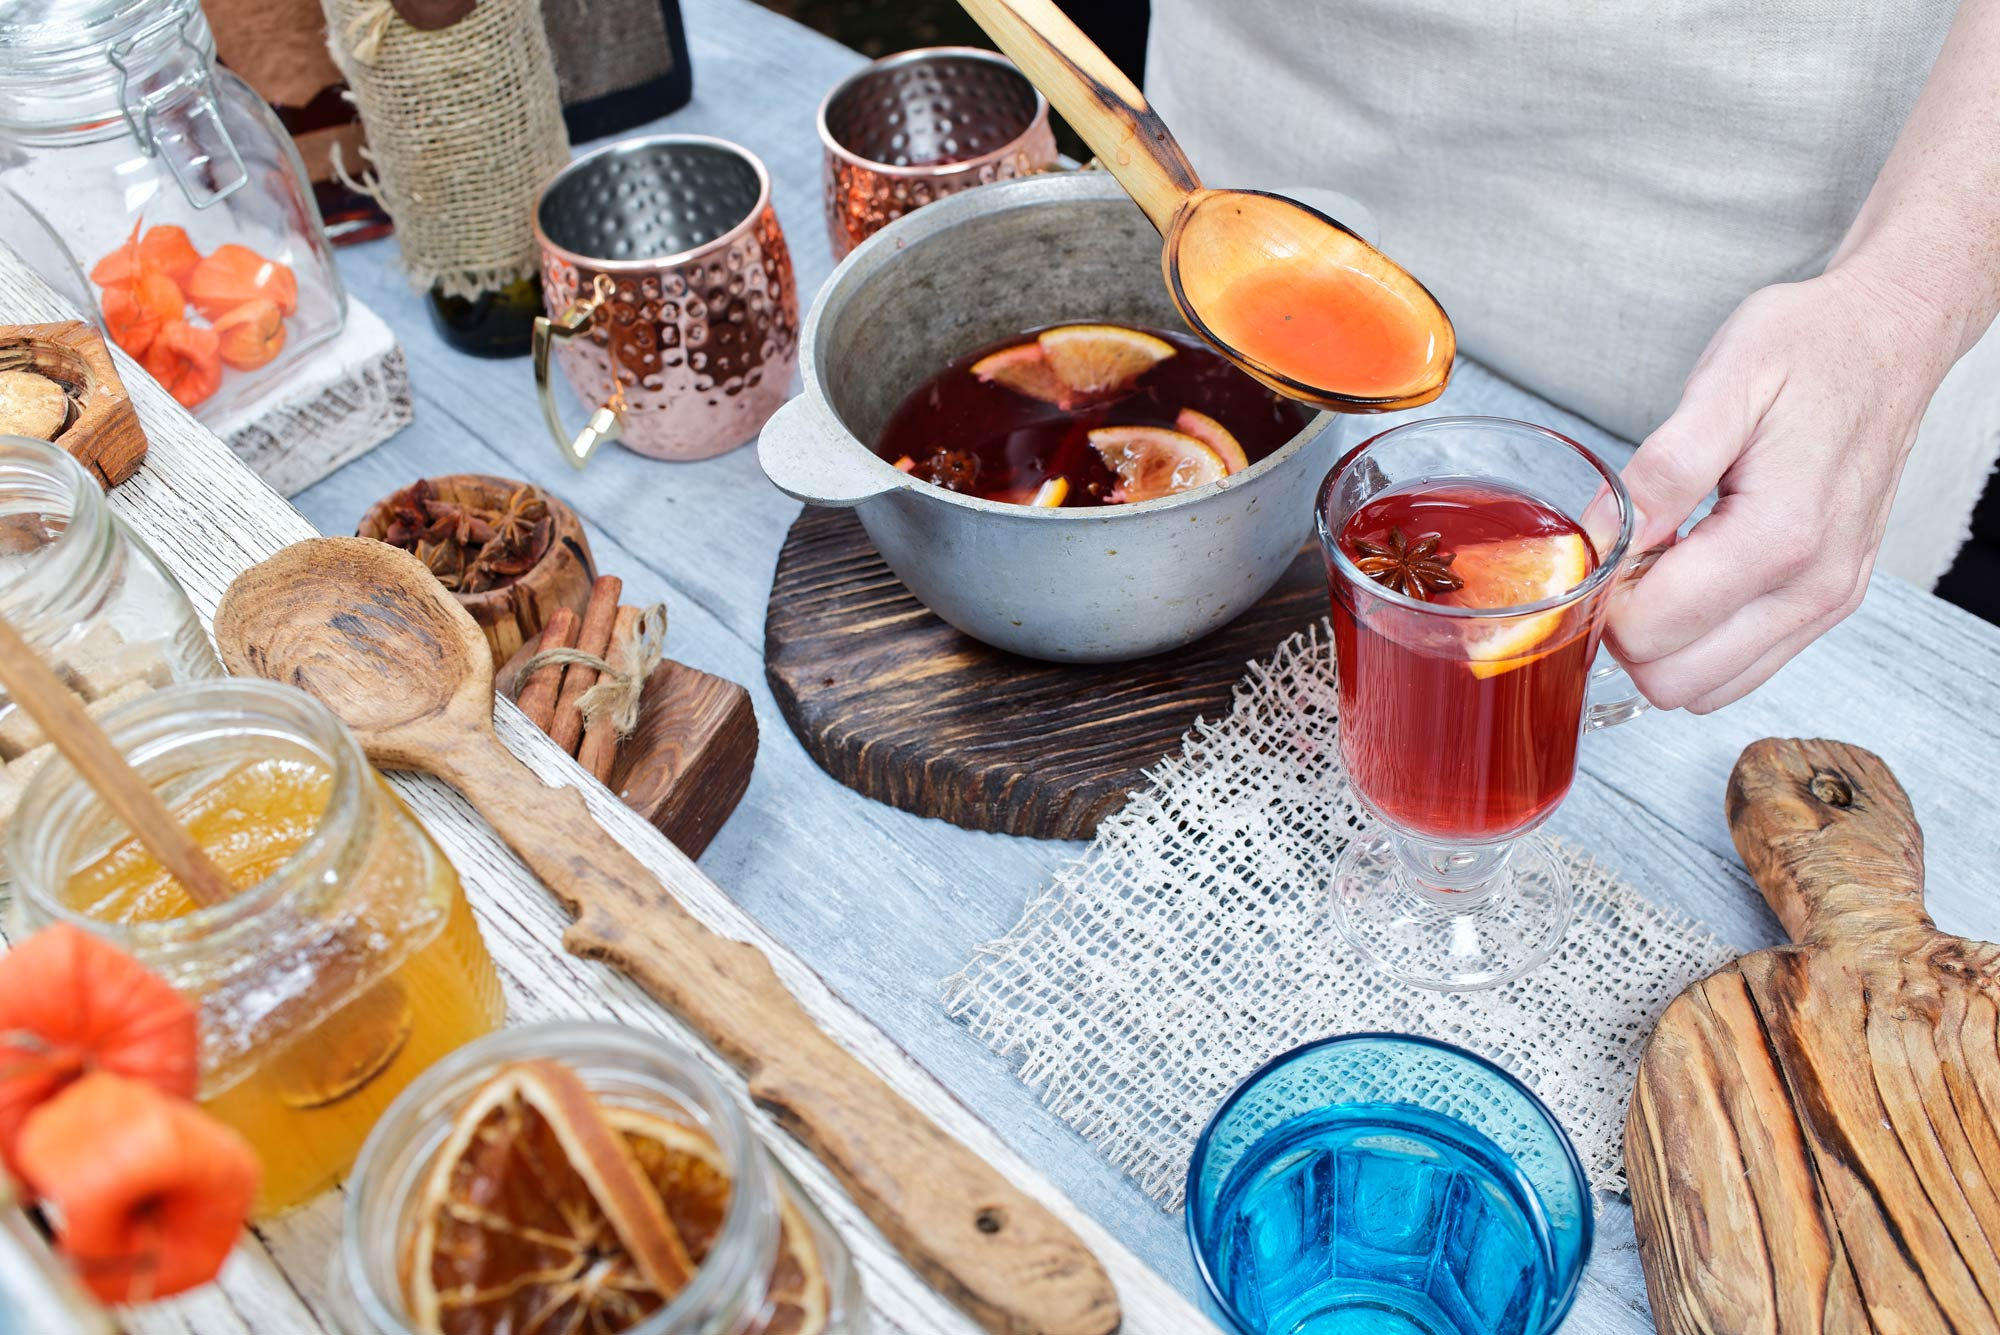 A person serving Austrian gluhwein, mulled red wine with cinnamon, star anise, vanilla and citrus.